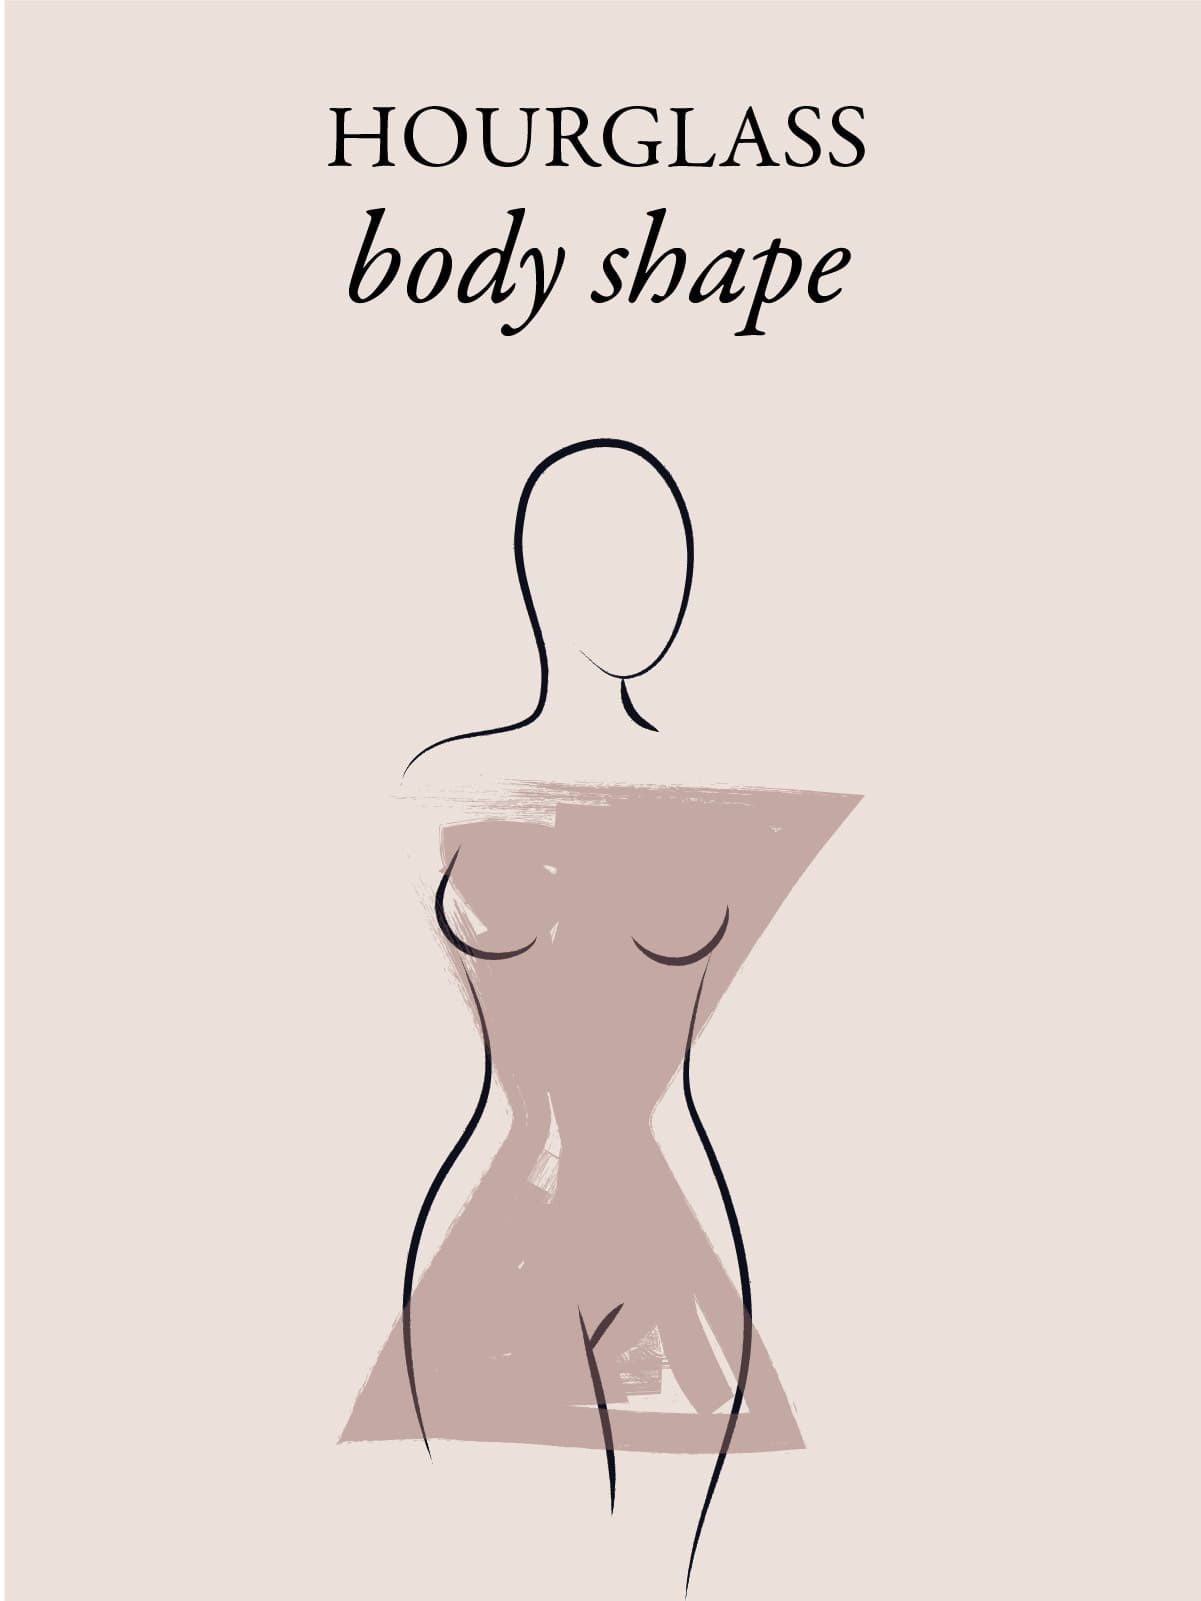 How To Dress If You Have an Hourglass Body Shape